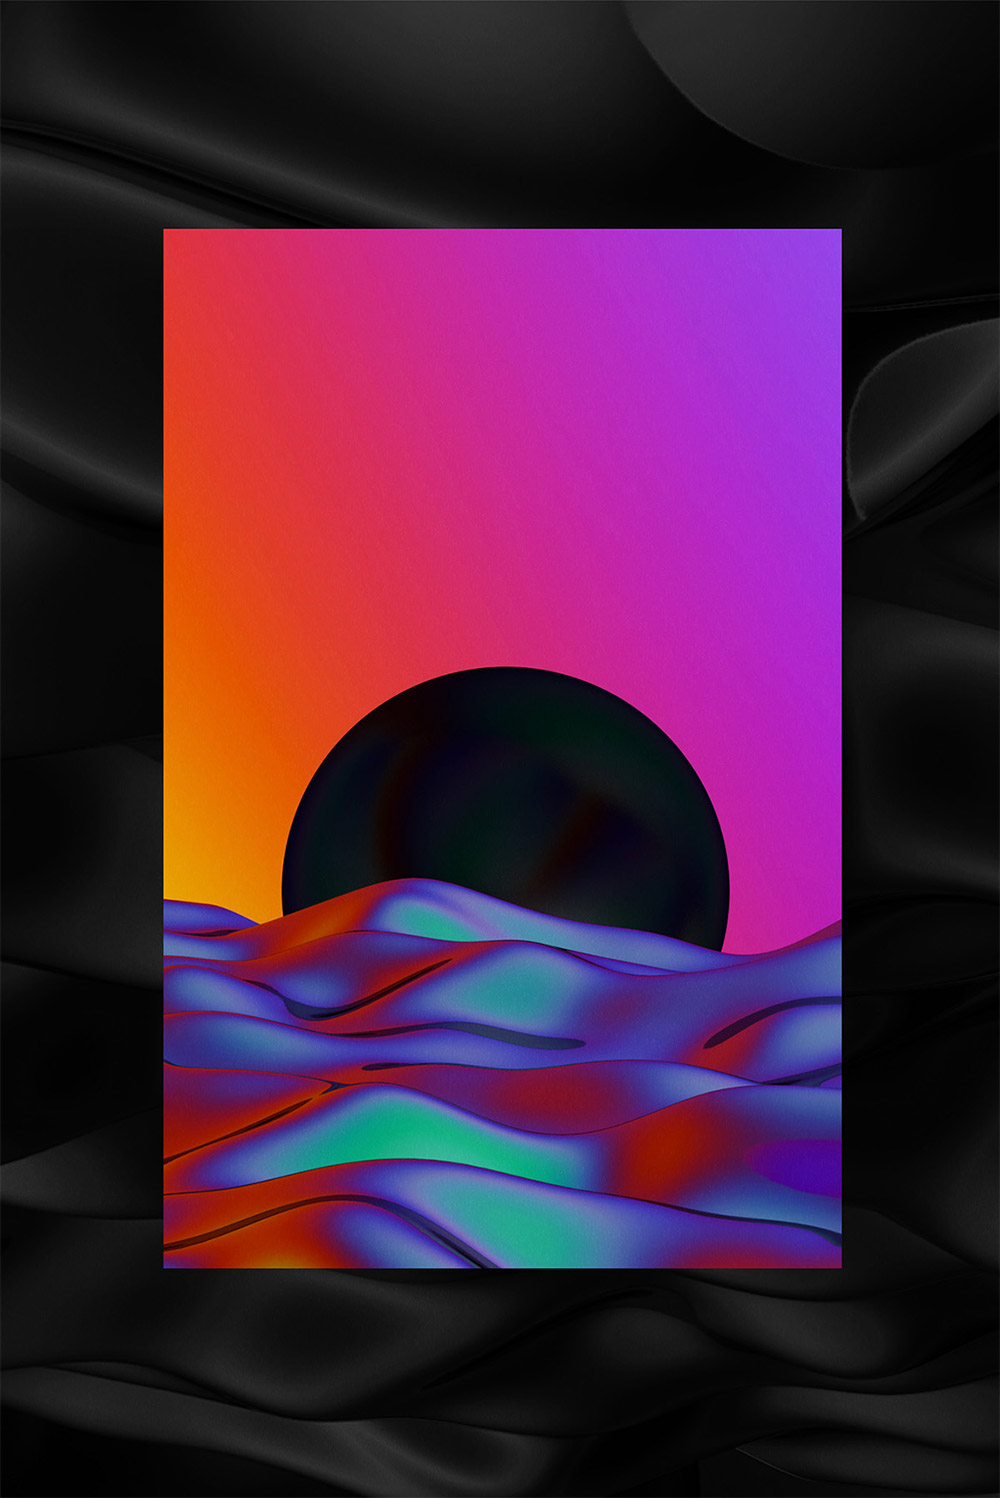 Psychedelic Artworks by Quentin Deronzier